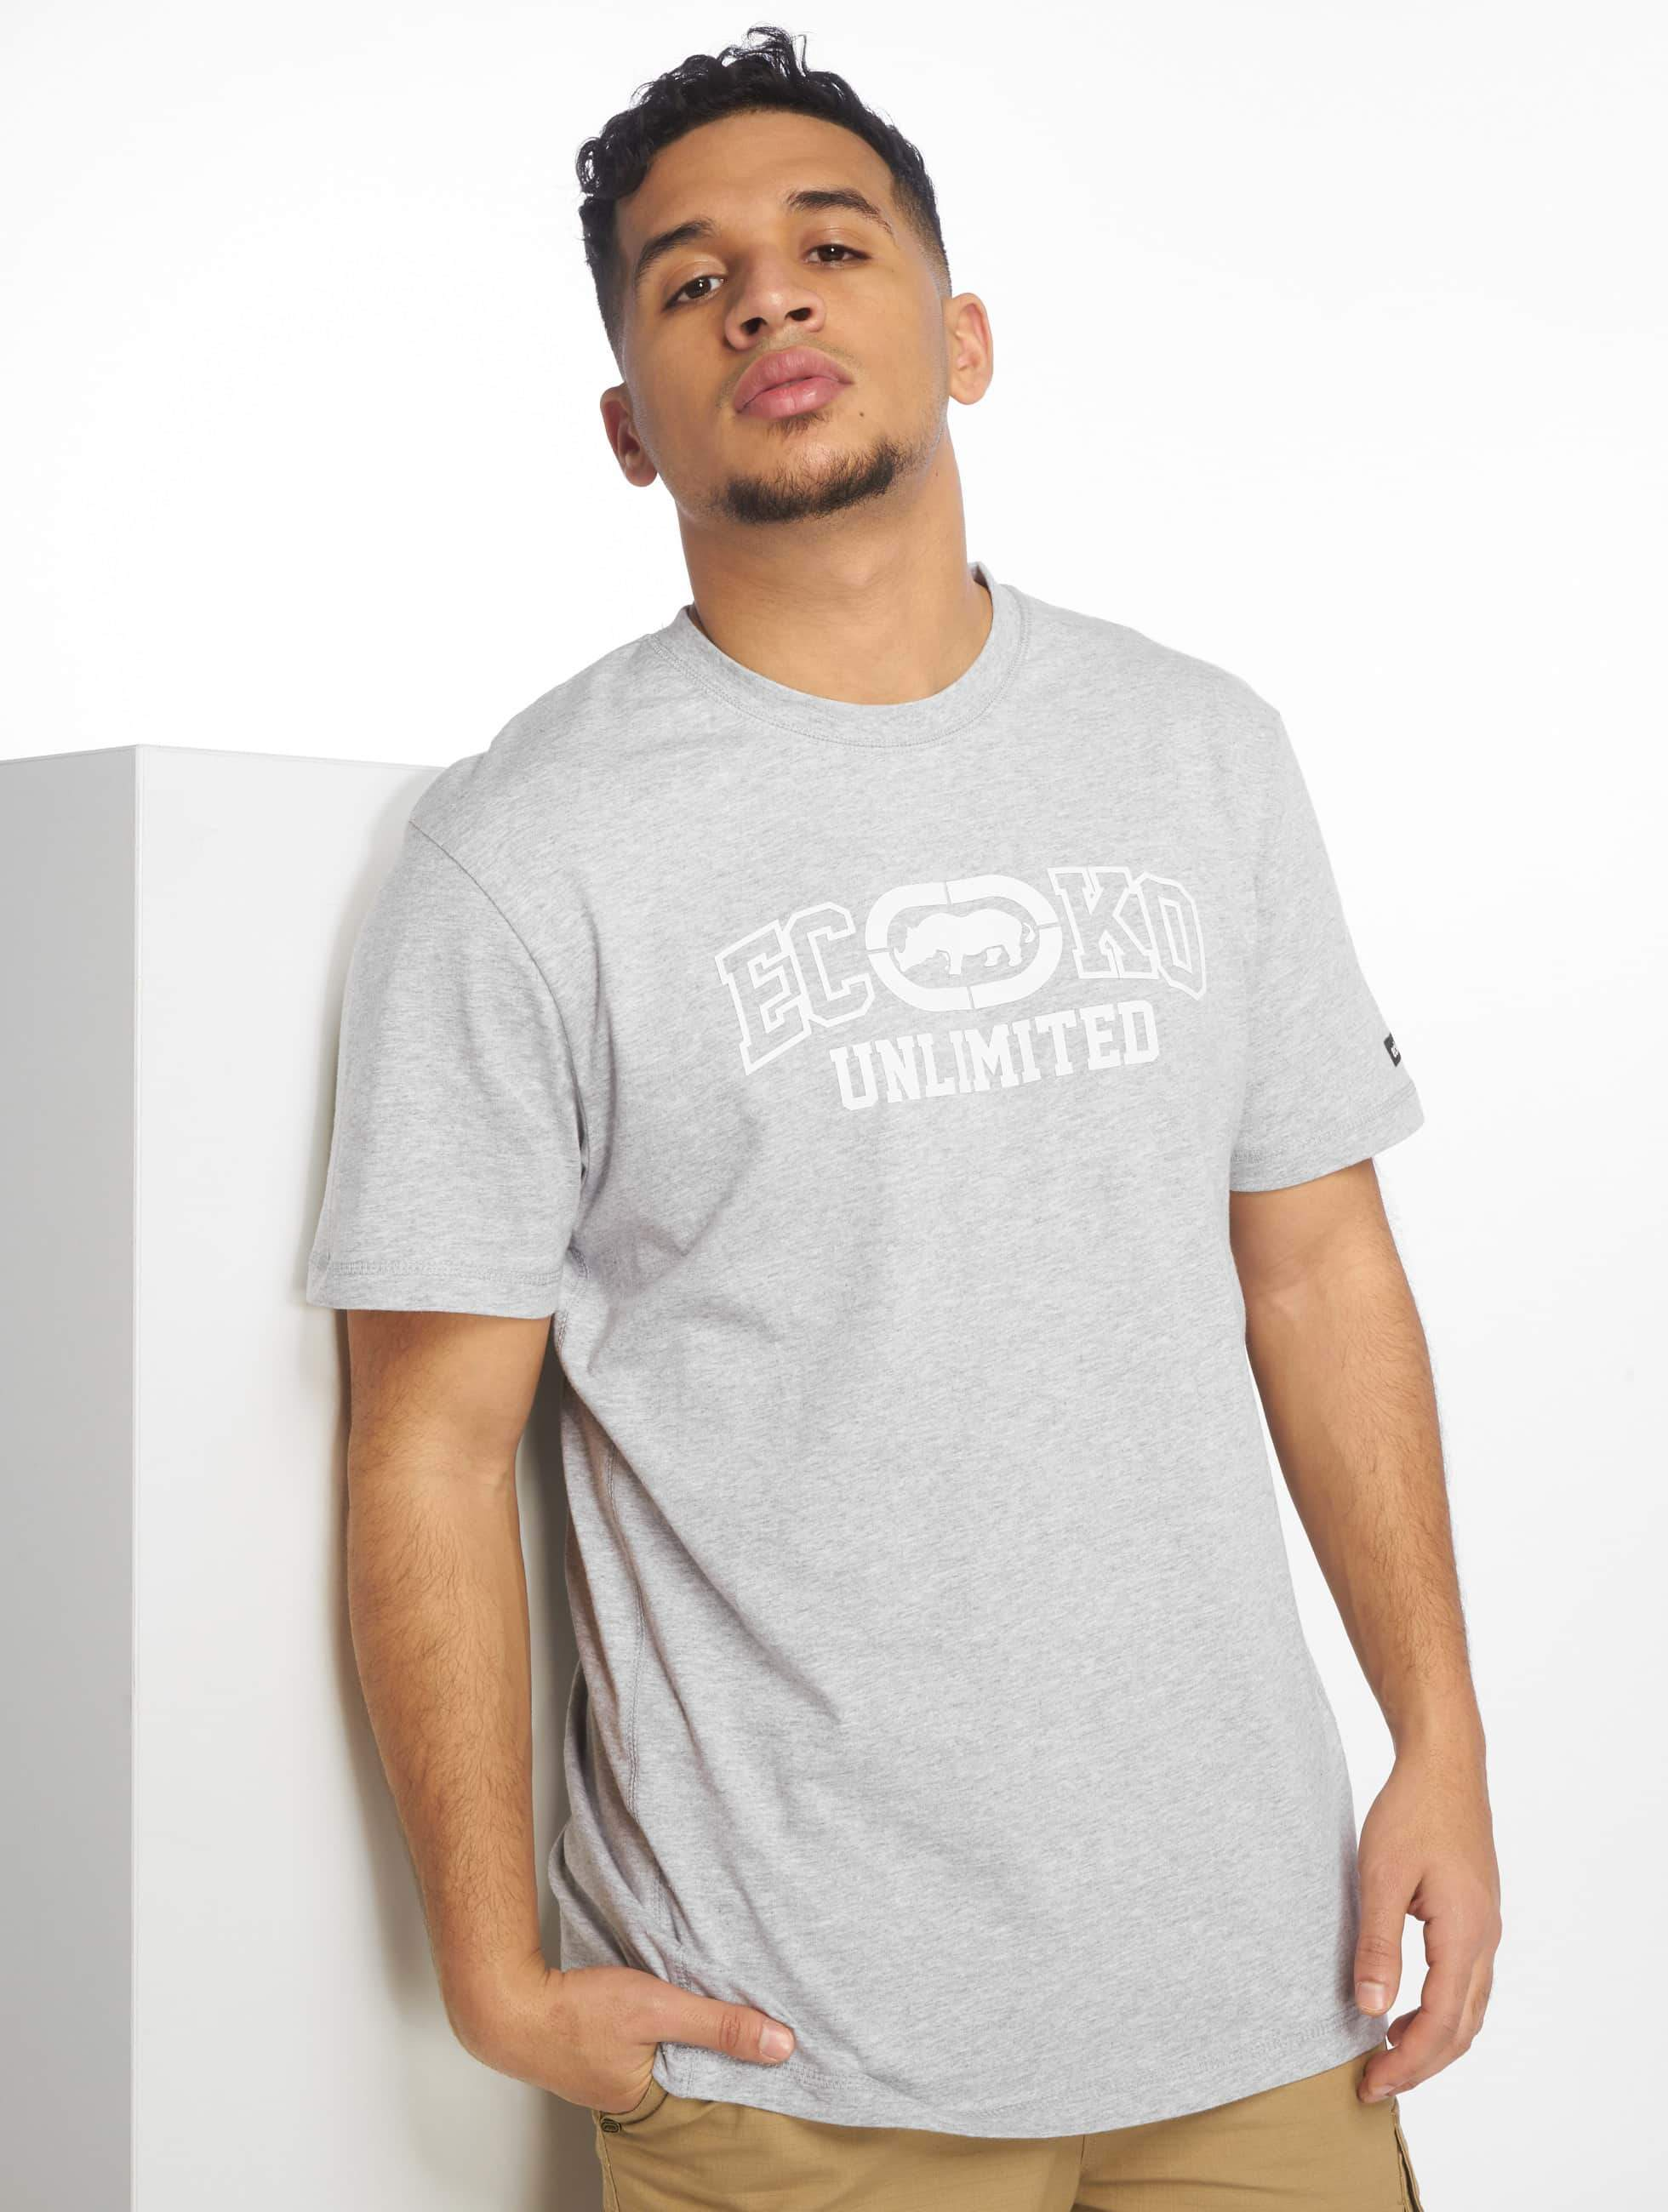 Ecko Unltd. / T-Shirt Oil City in grey 3XL